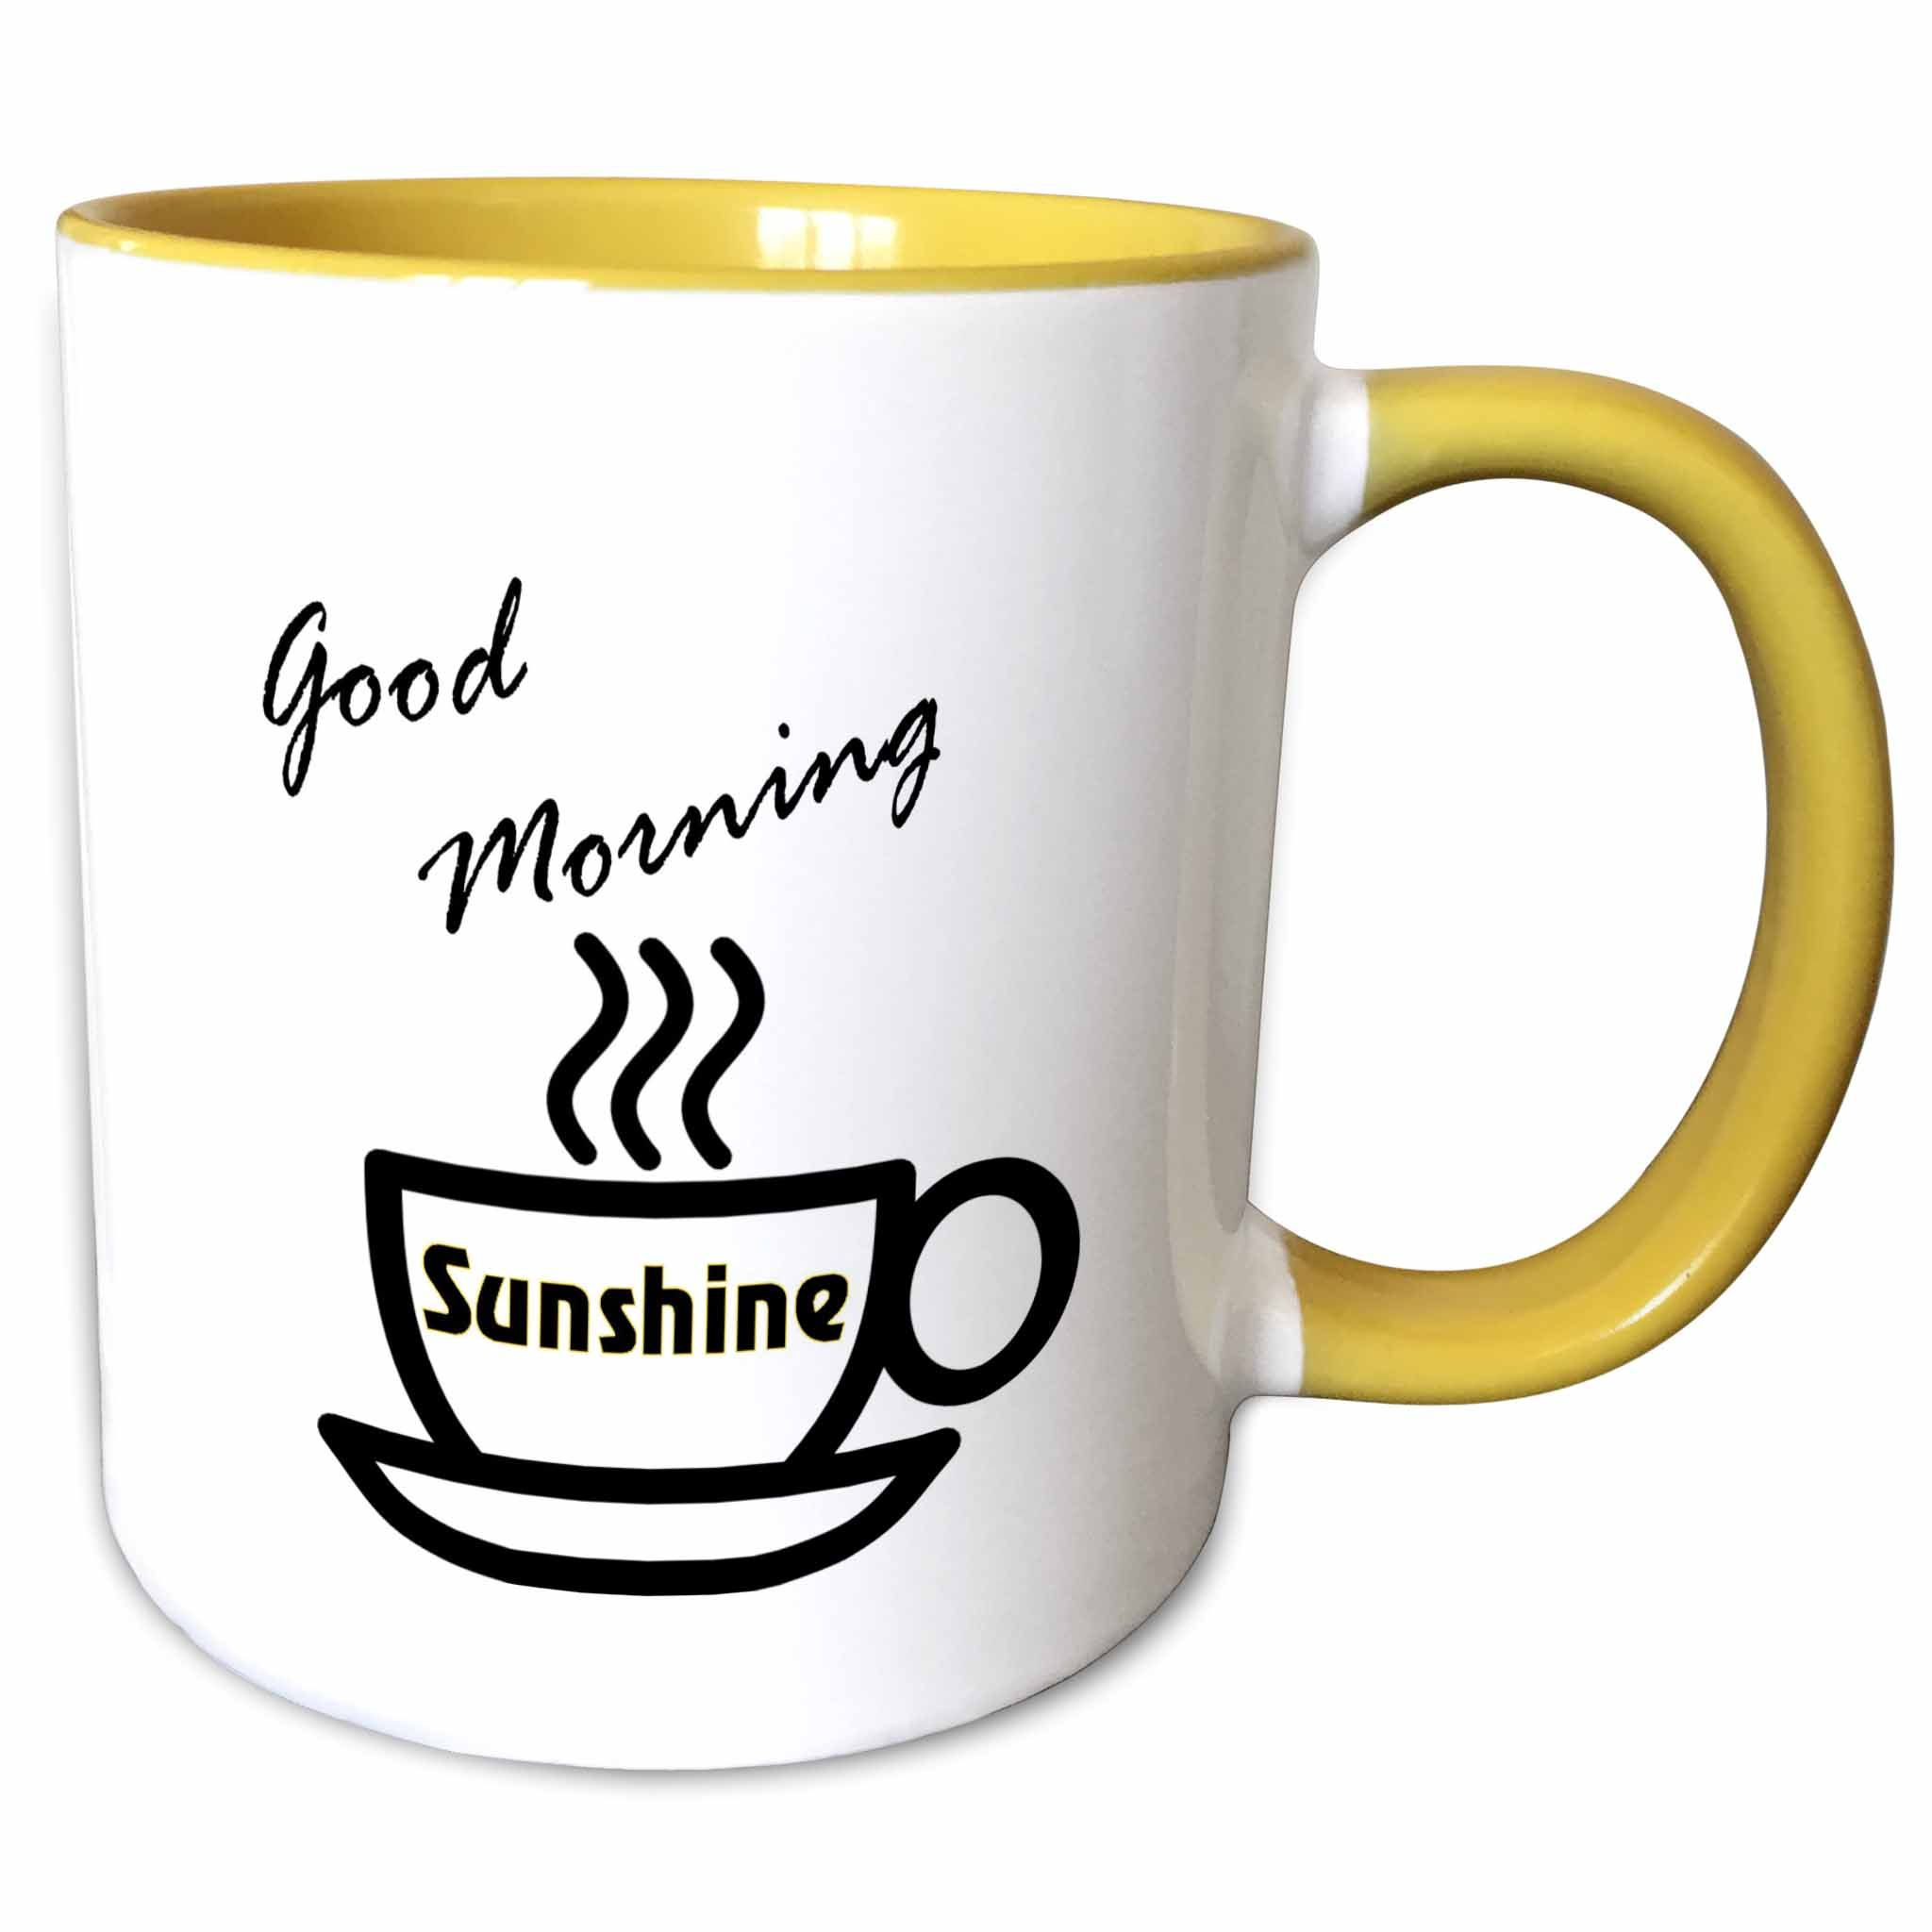 3dRose Print of Coffee Cup With Good Morning Sunshine